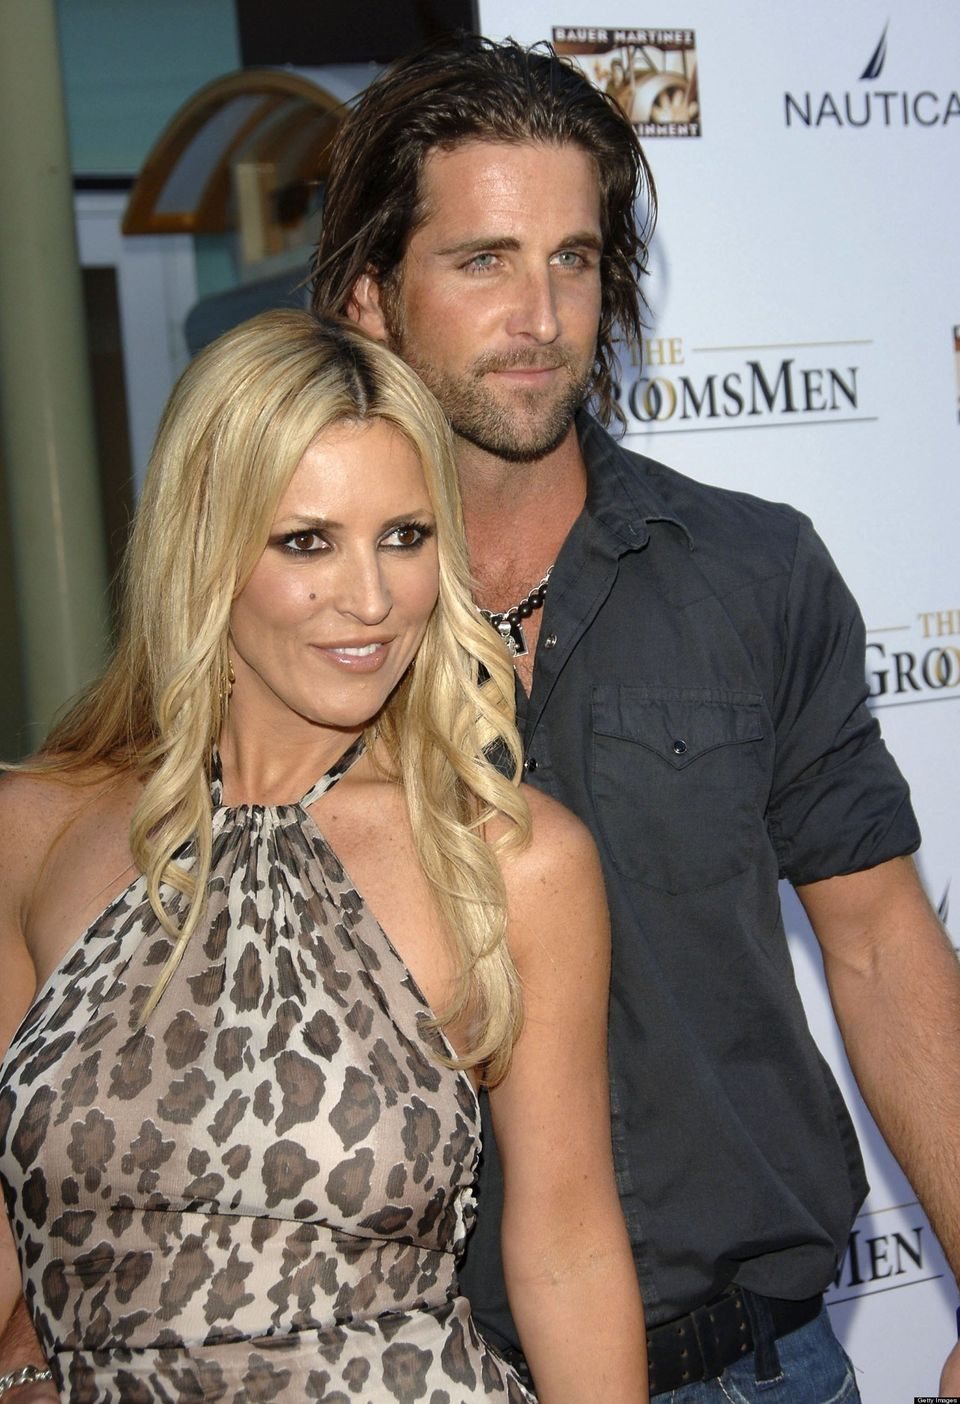 Actress Jillian Barberie and her husband Grant Reynolds attend the World Premiere of 'The Groomsmen' at the Arclight Cinema o